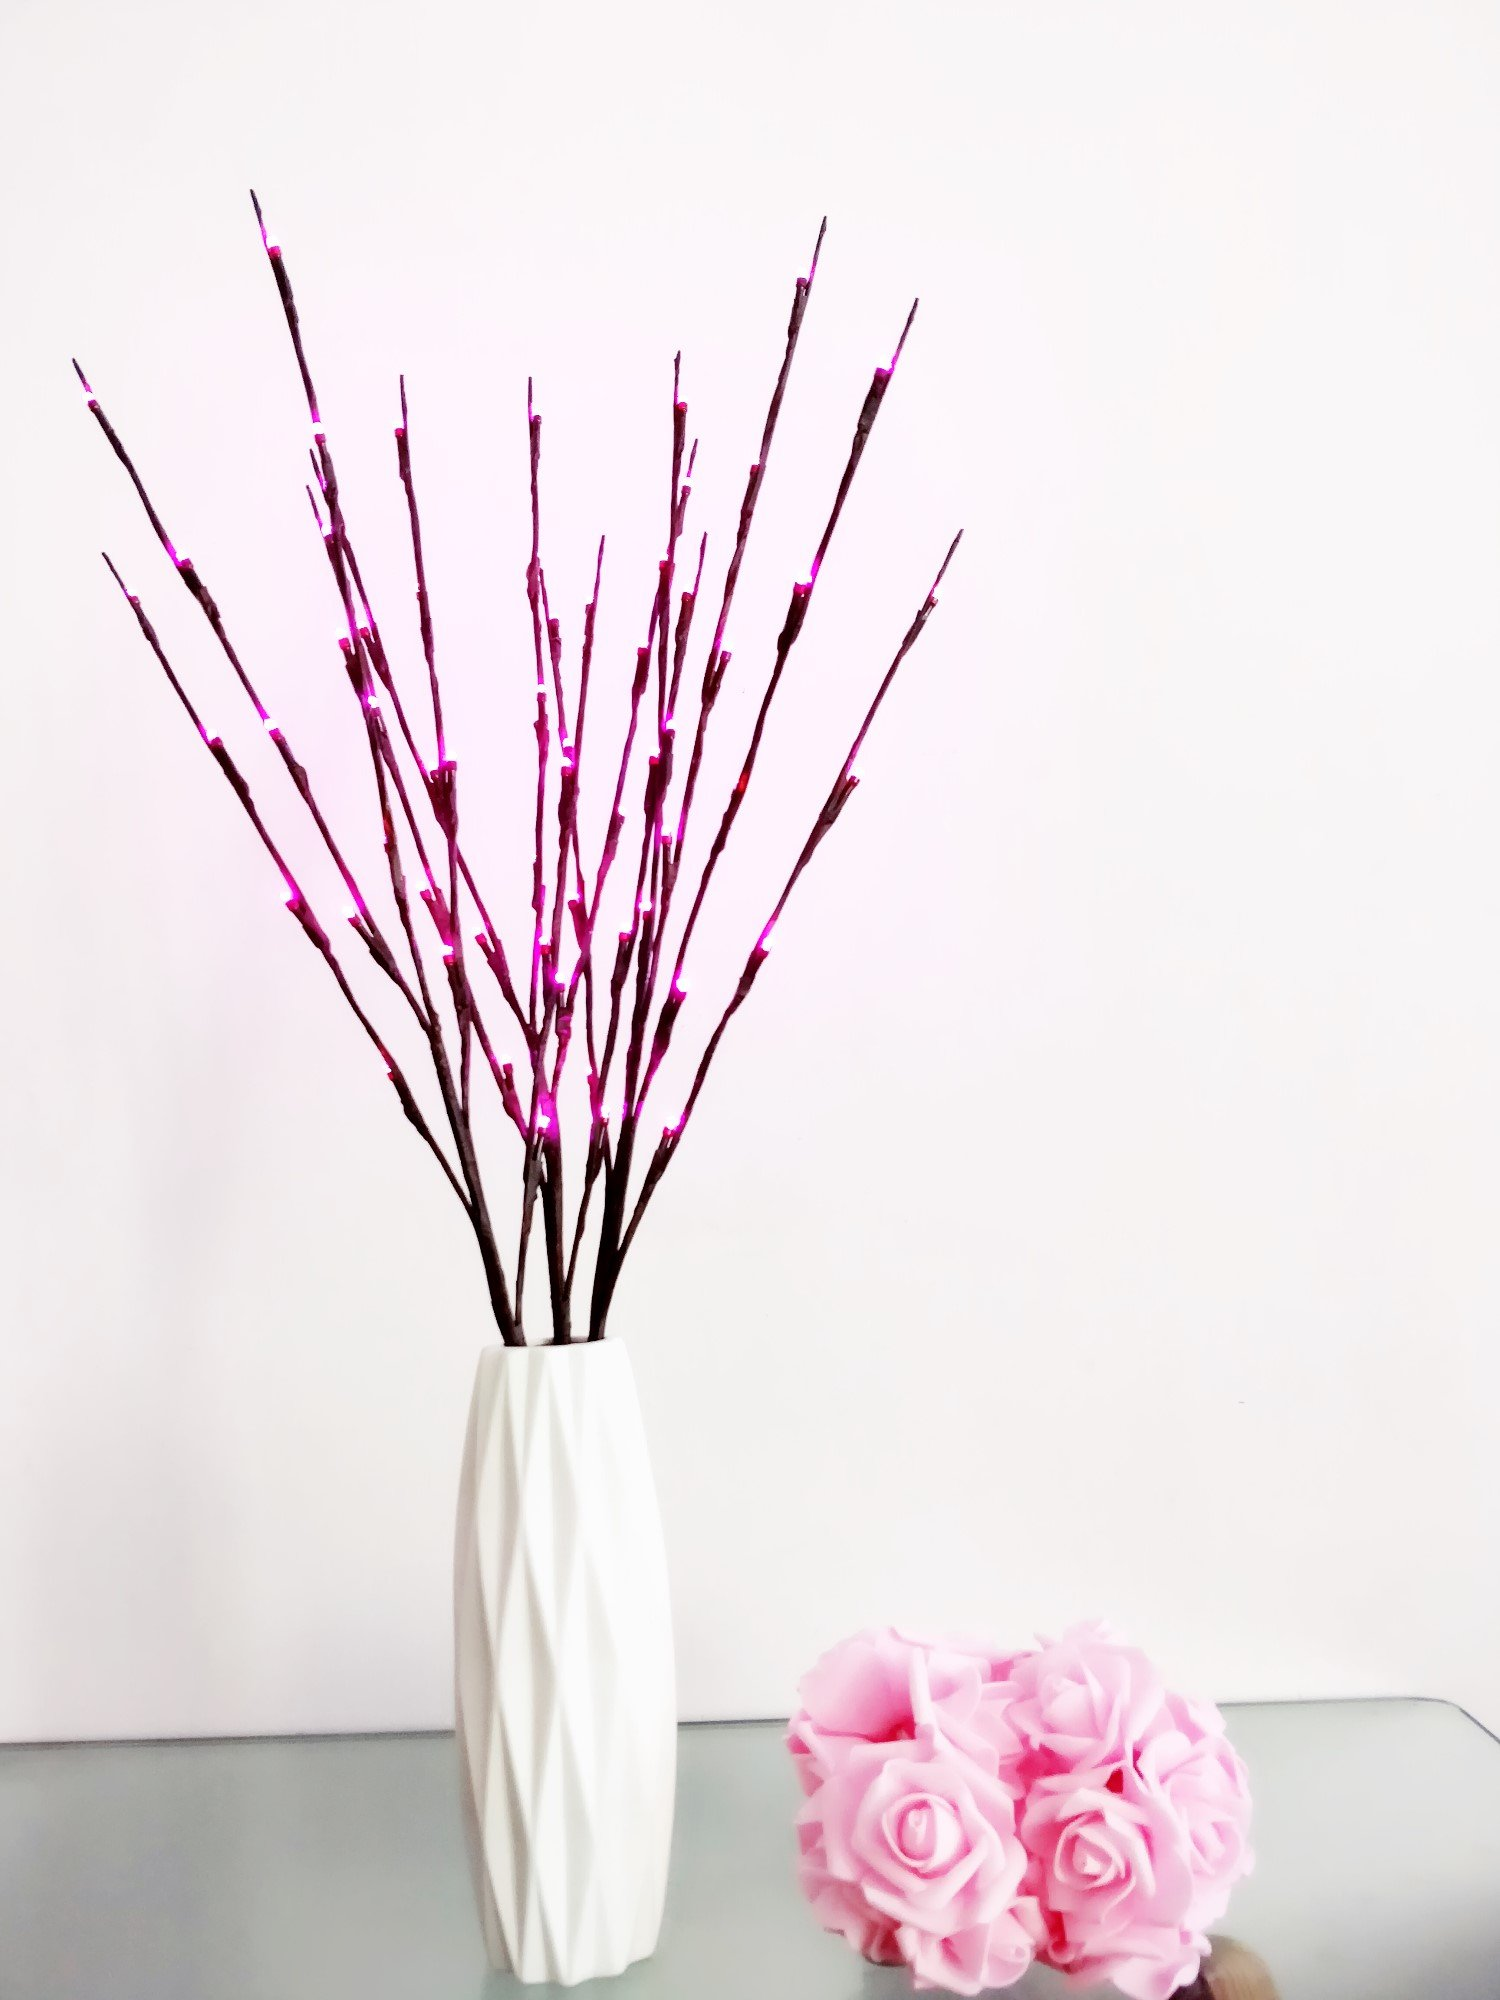 Fantasee 3 Pack 76cm Branch Twig Light LED Tree Branches Light Flexible Branch Decoration Light for Indoor Shop Windows Vase Table Living Room, 4 Colors Available (3 Pack, Pink)